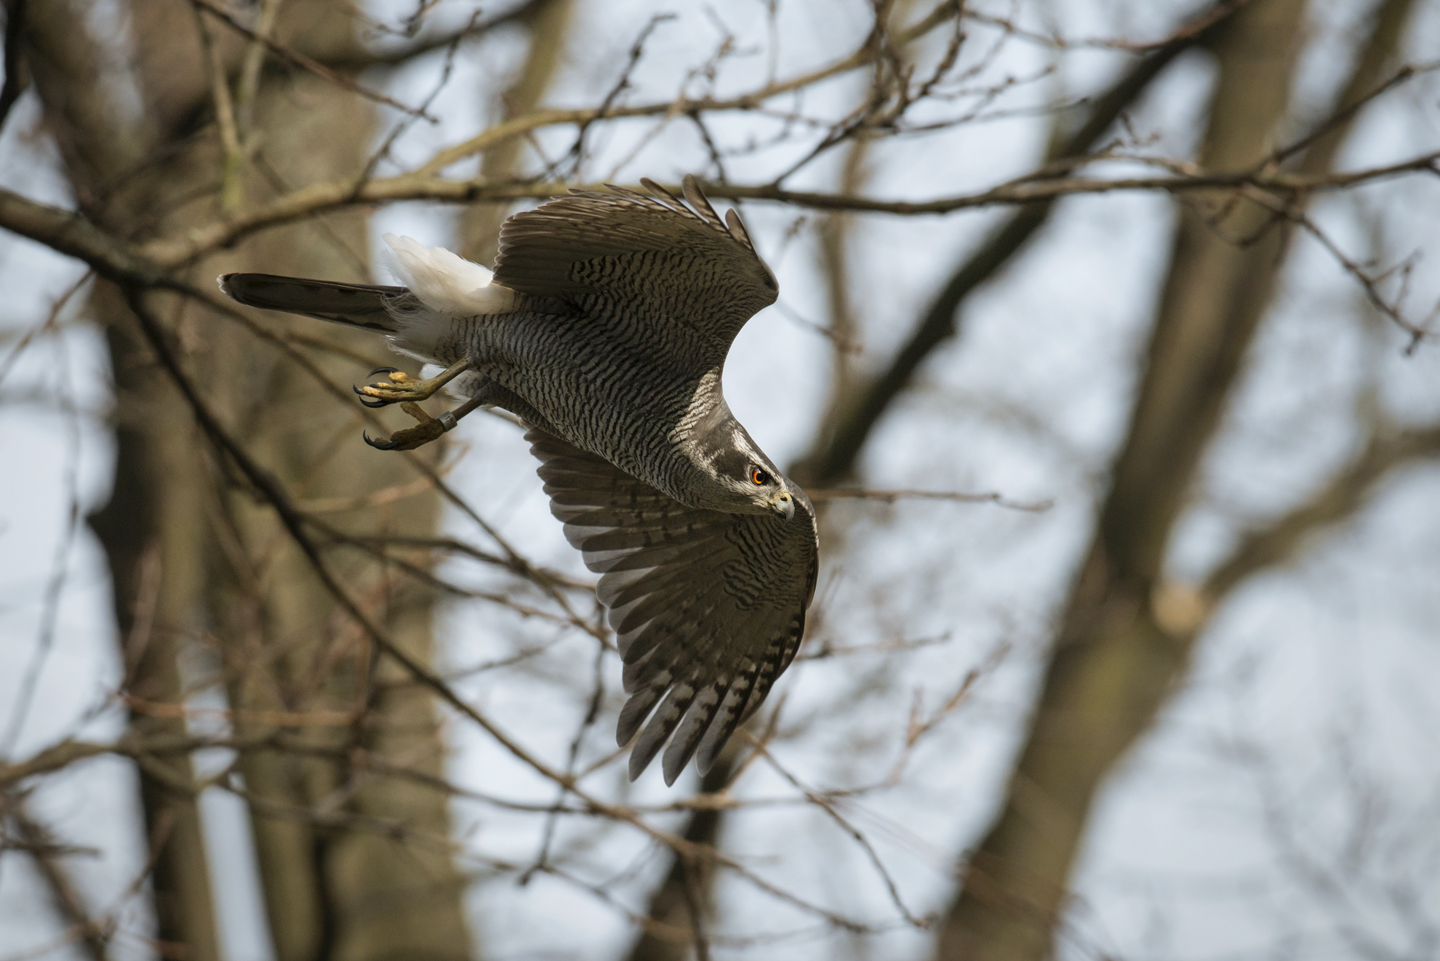 Feral pigeons and city rats are common prey, but kestrels, pet budgies and even long-eared owls are on the menu for this apex aerial predator